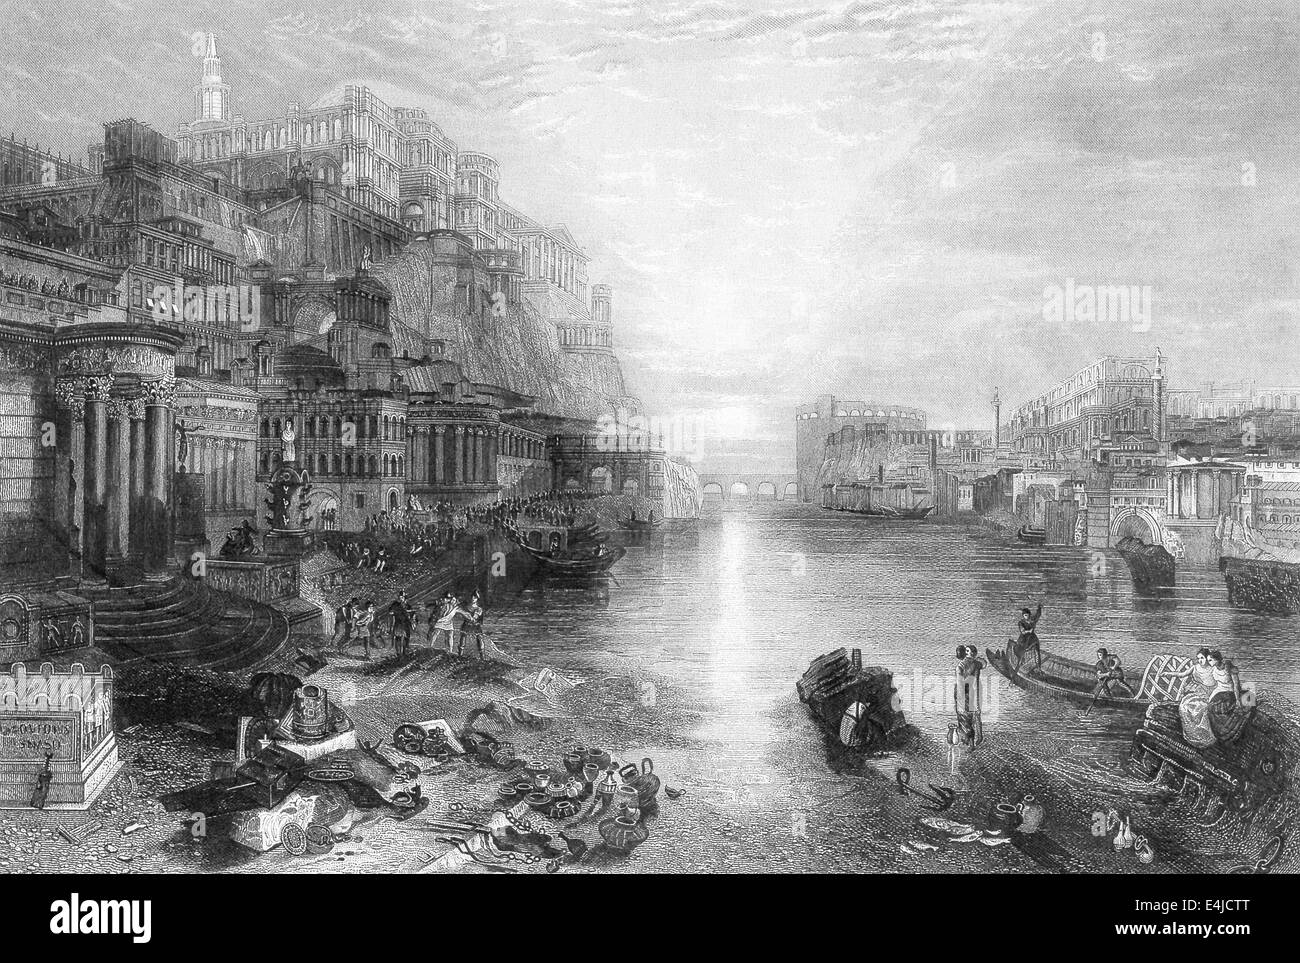 This 1891 illustration shows the Tiber River and the Palace of the Caesars at top left on the Palatine Hill. - Stock Image